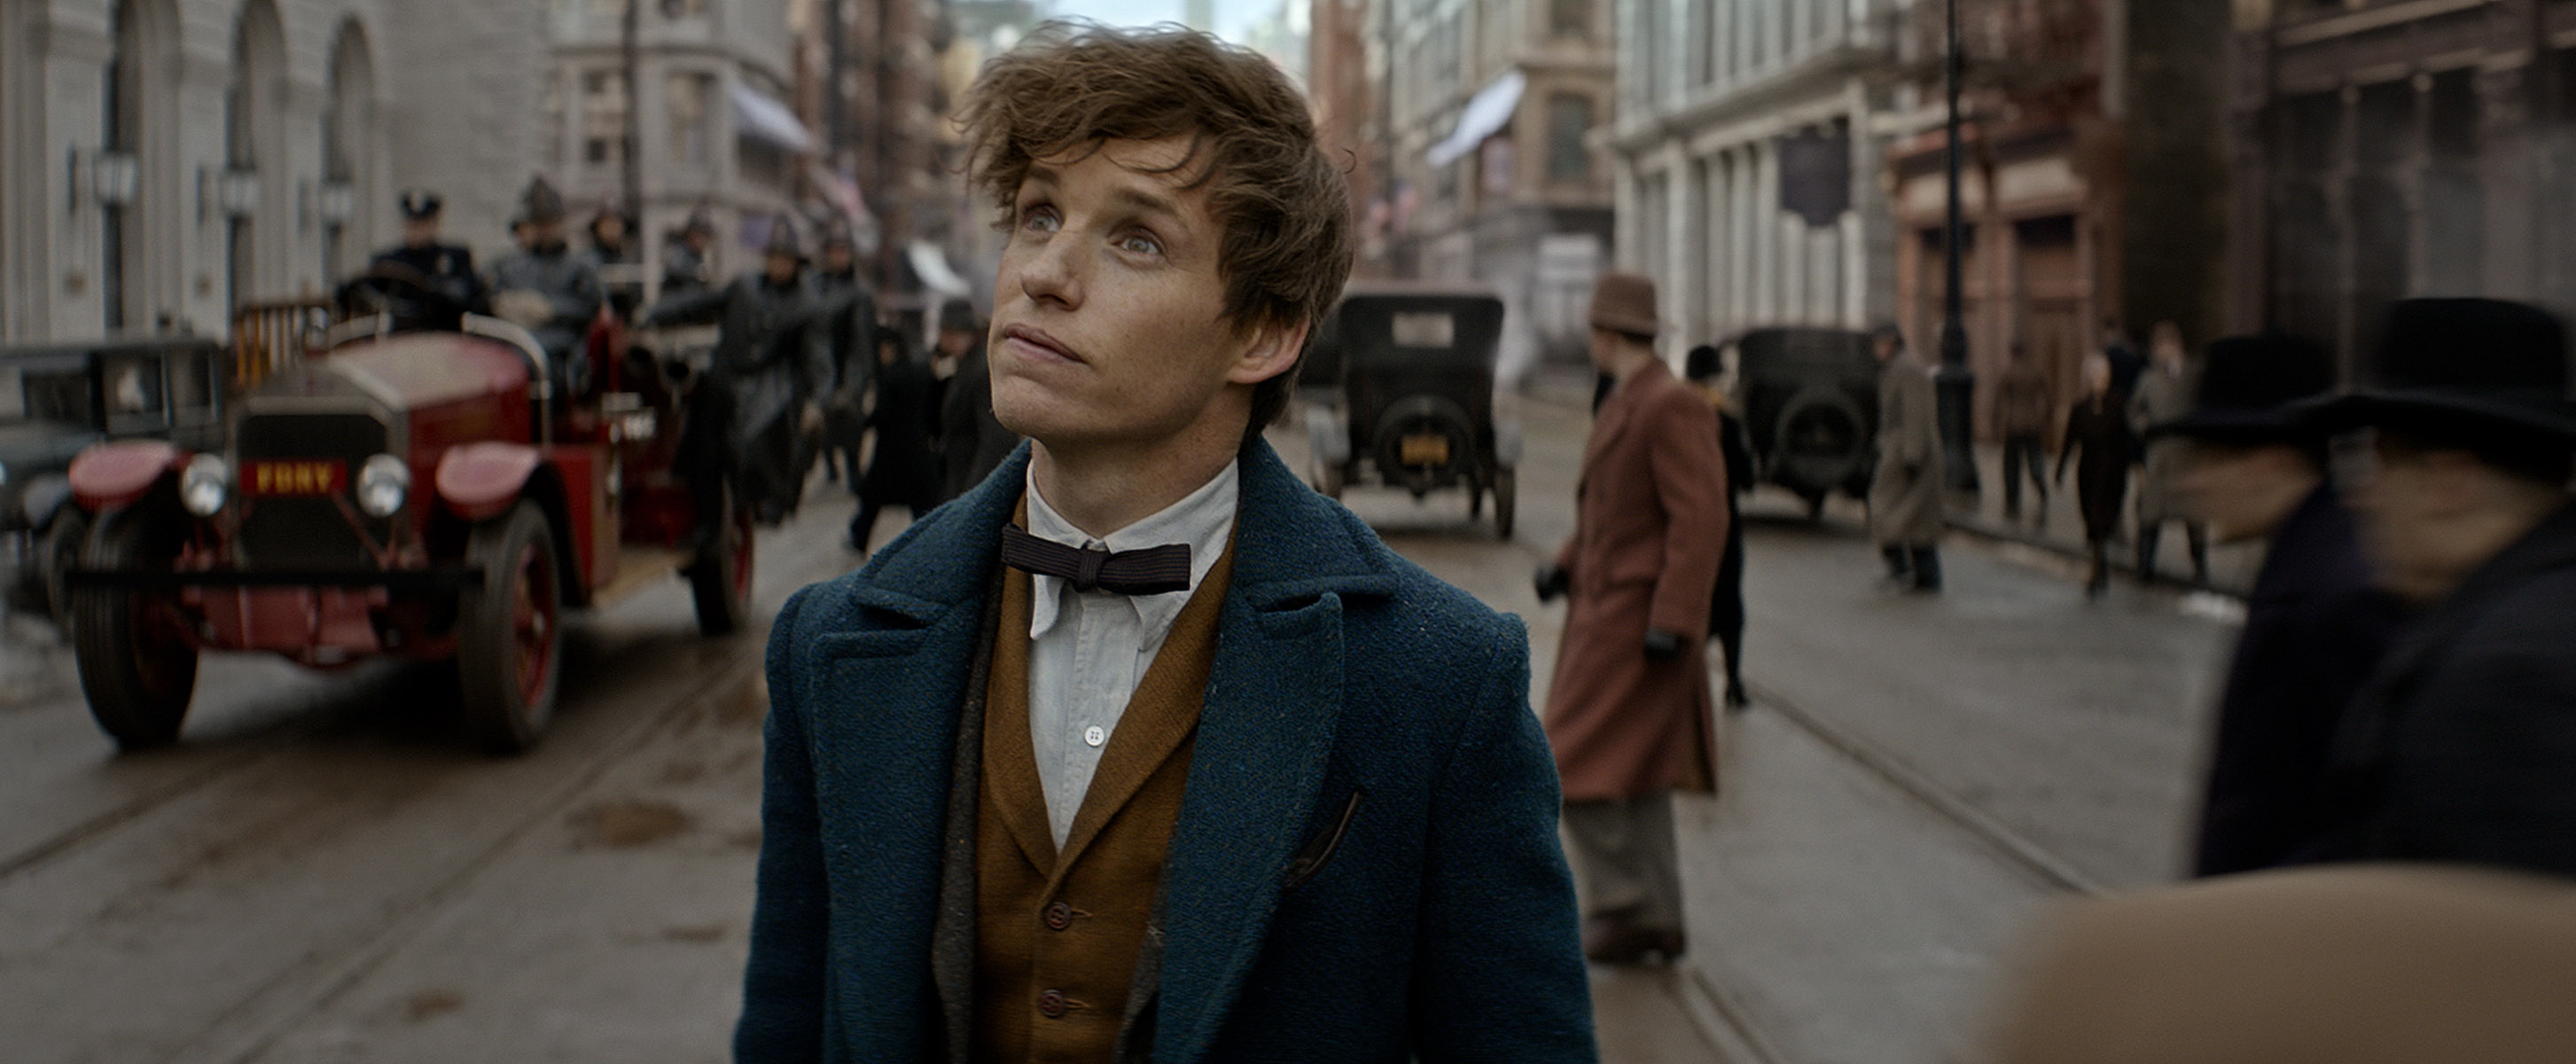 Fantastic Beasts And Where To Find Them Ignites Our Inner Child